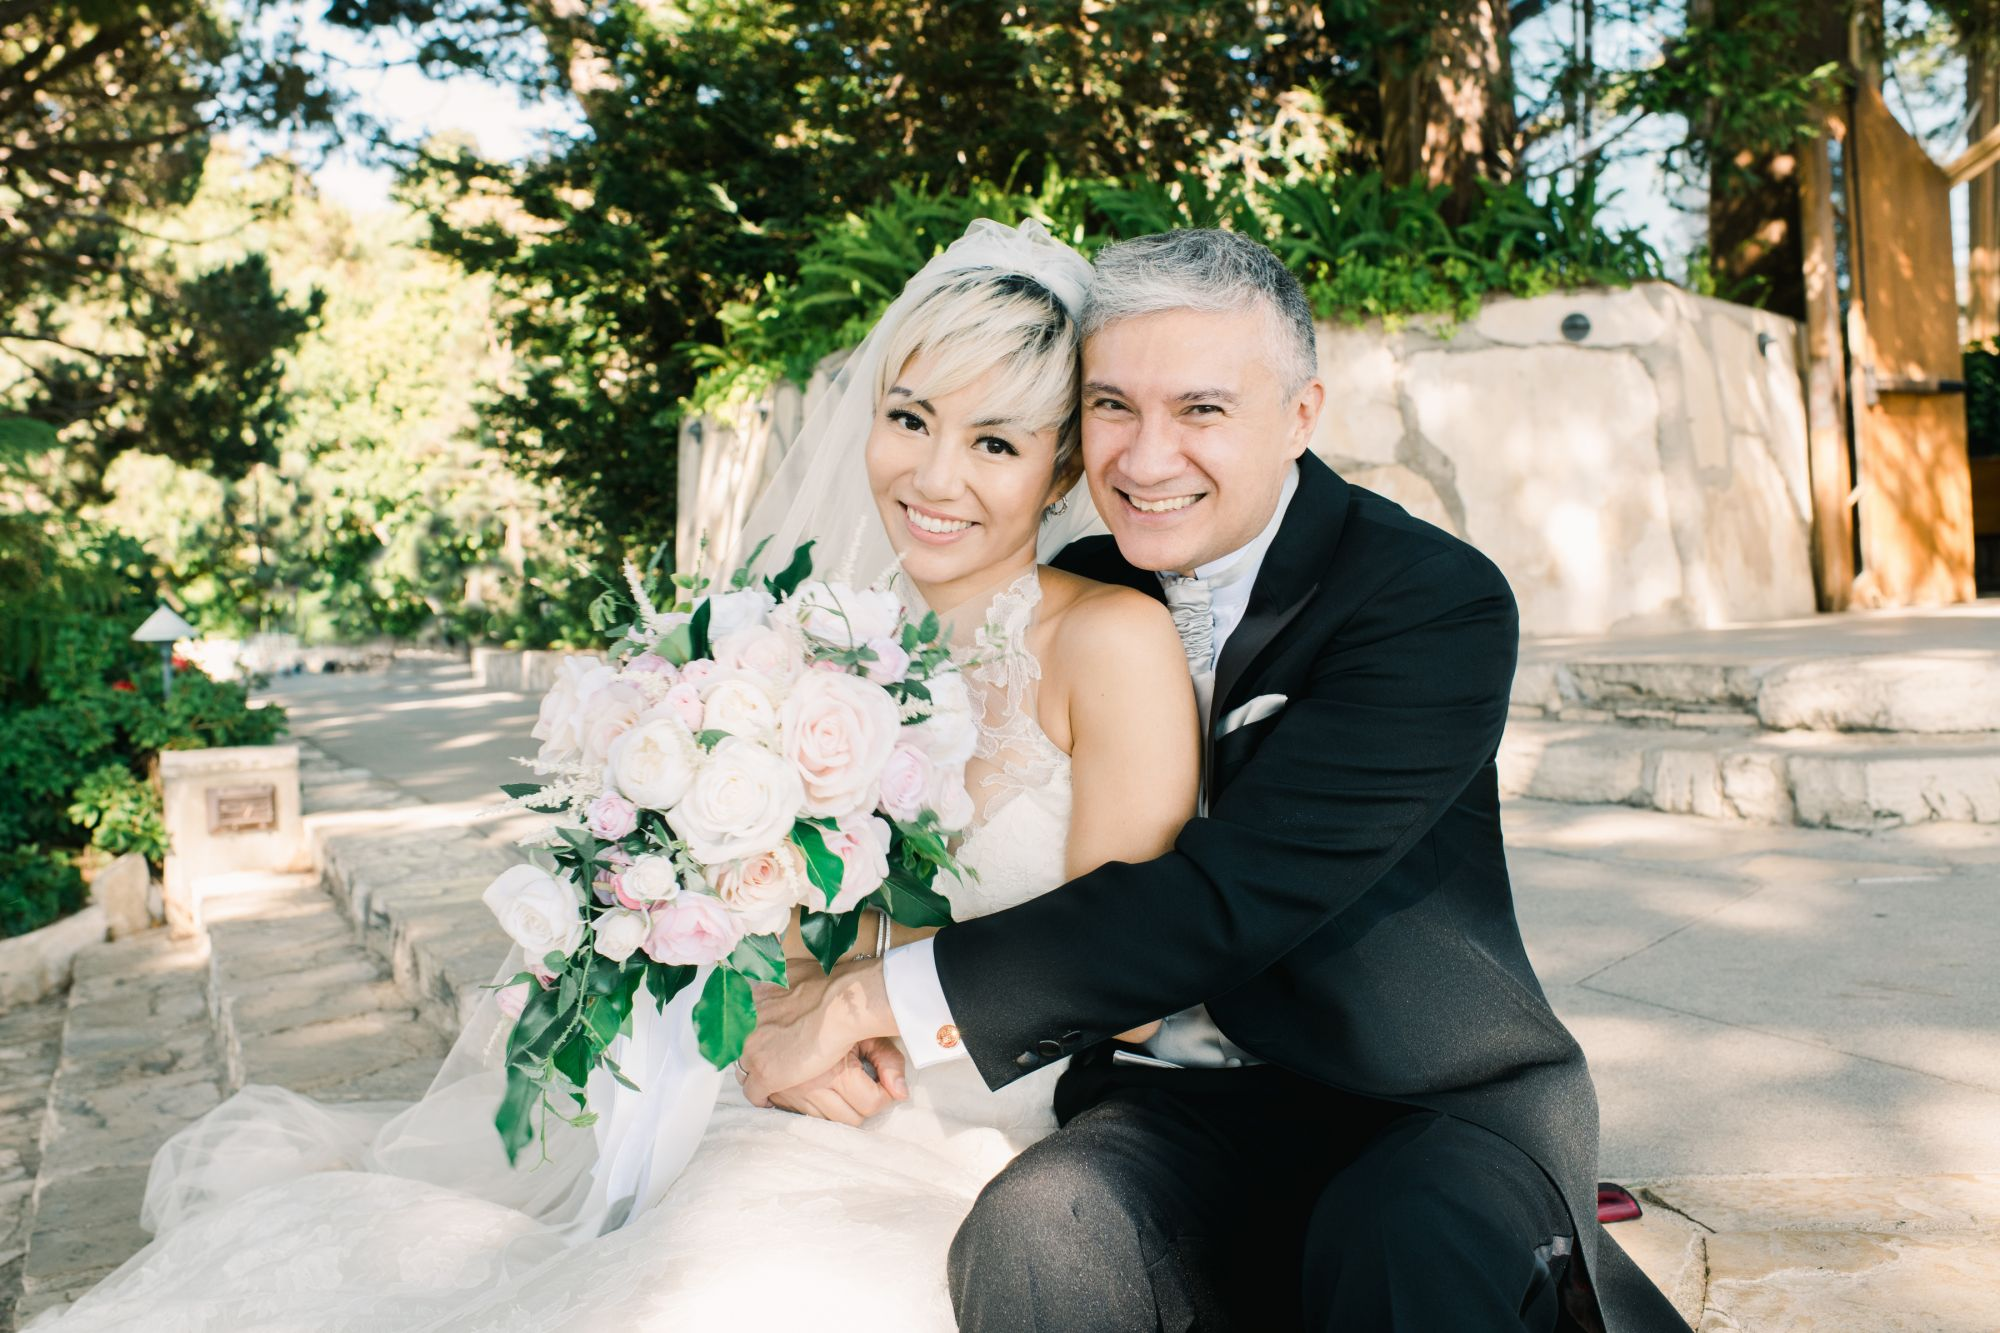 Real Weddings: Inside Antony Szeto and JuJu Chan's Wedding